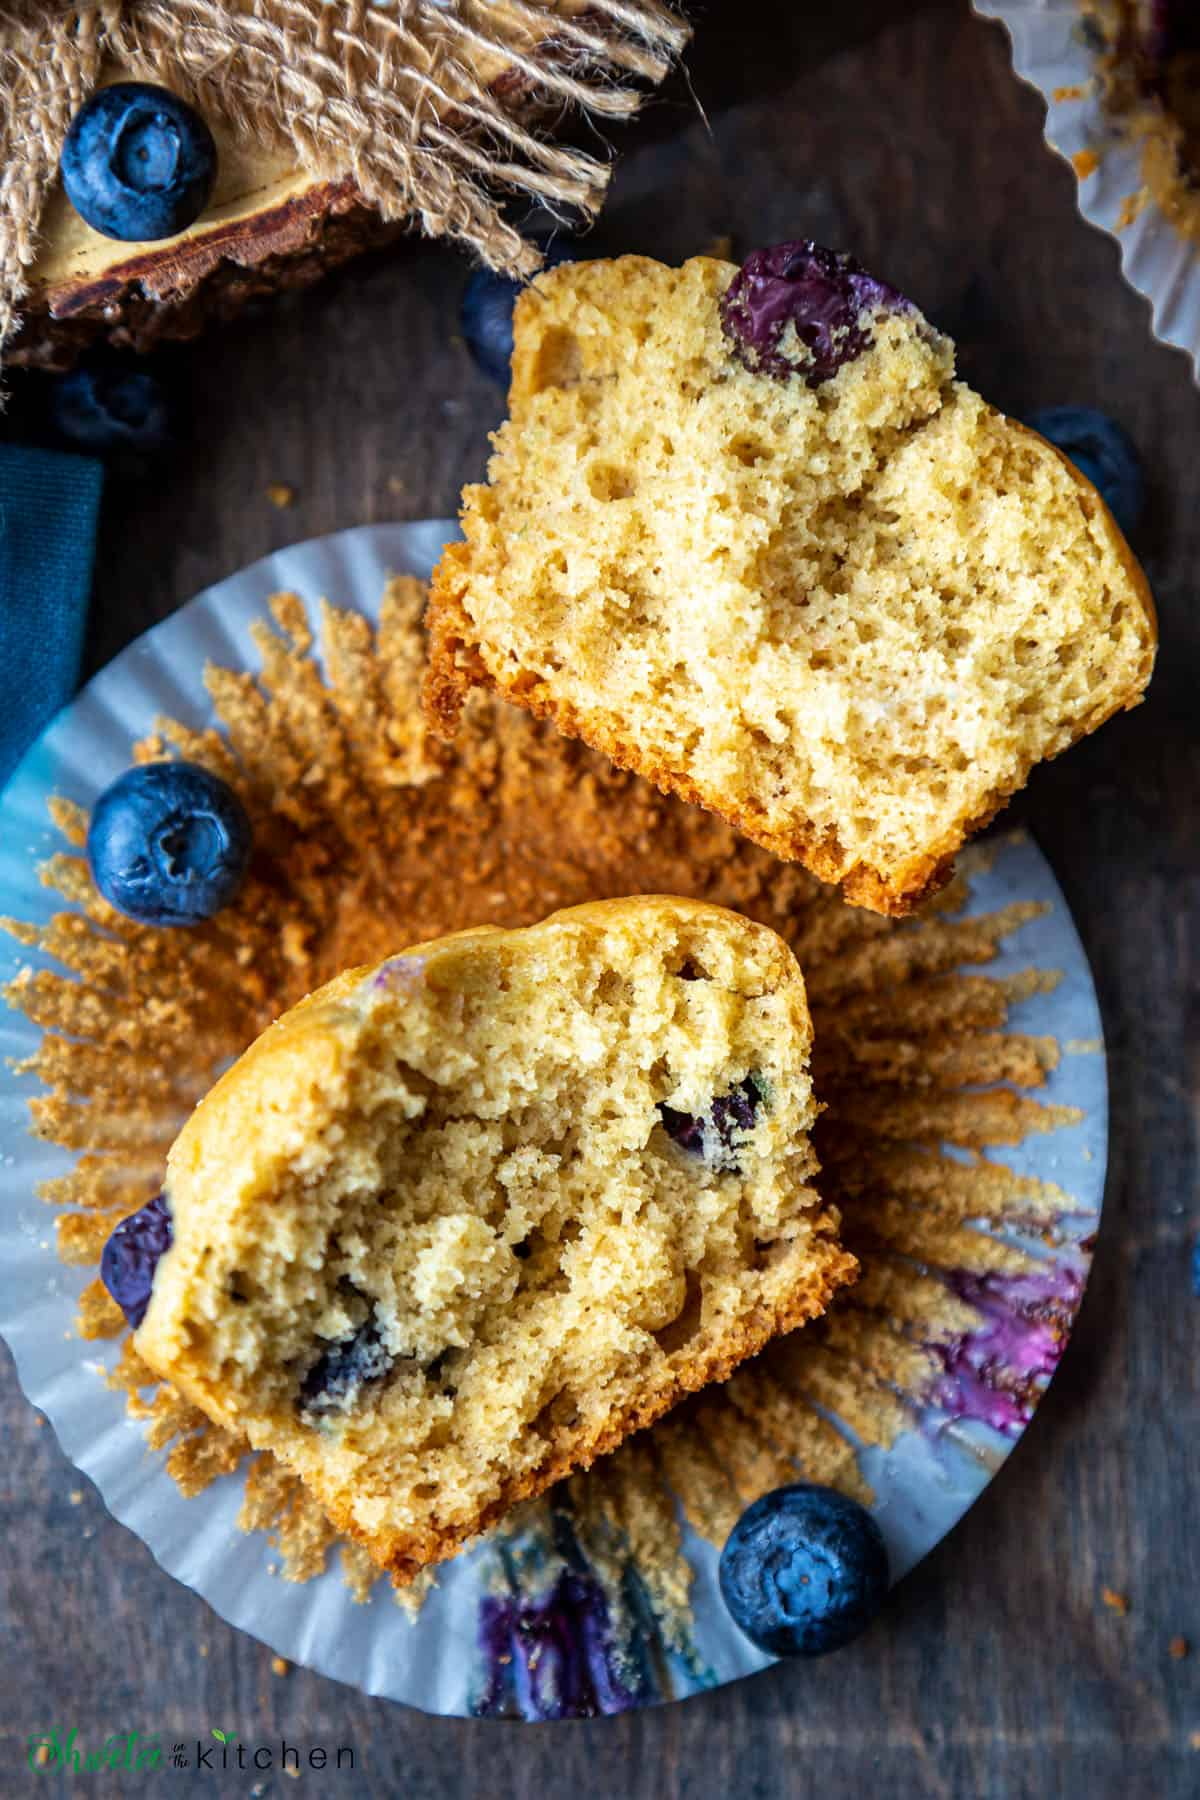 Blueberry muffin split in half showing the crumbs and texture